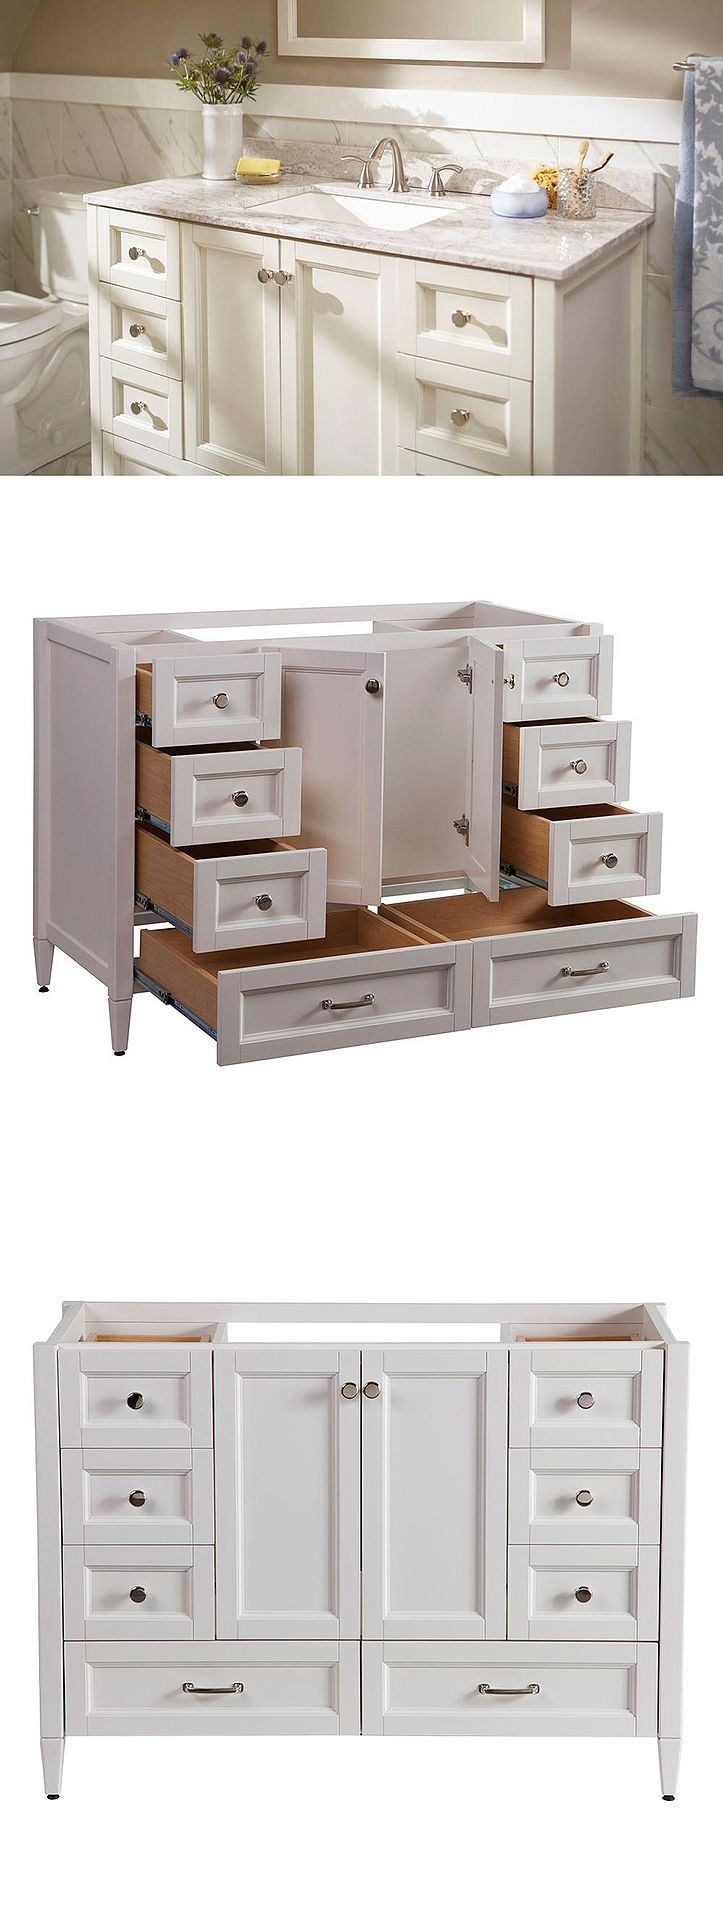 Brilliant Bathroom Storage Furniture At Bathroom City  Bathroom Vanity Cabinets